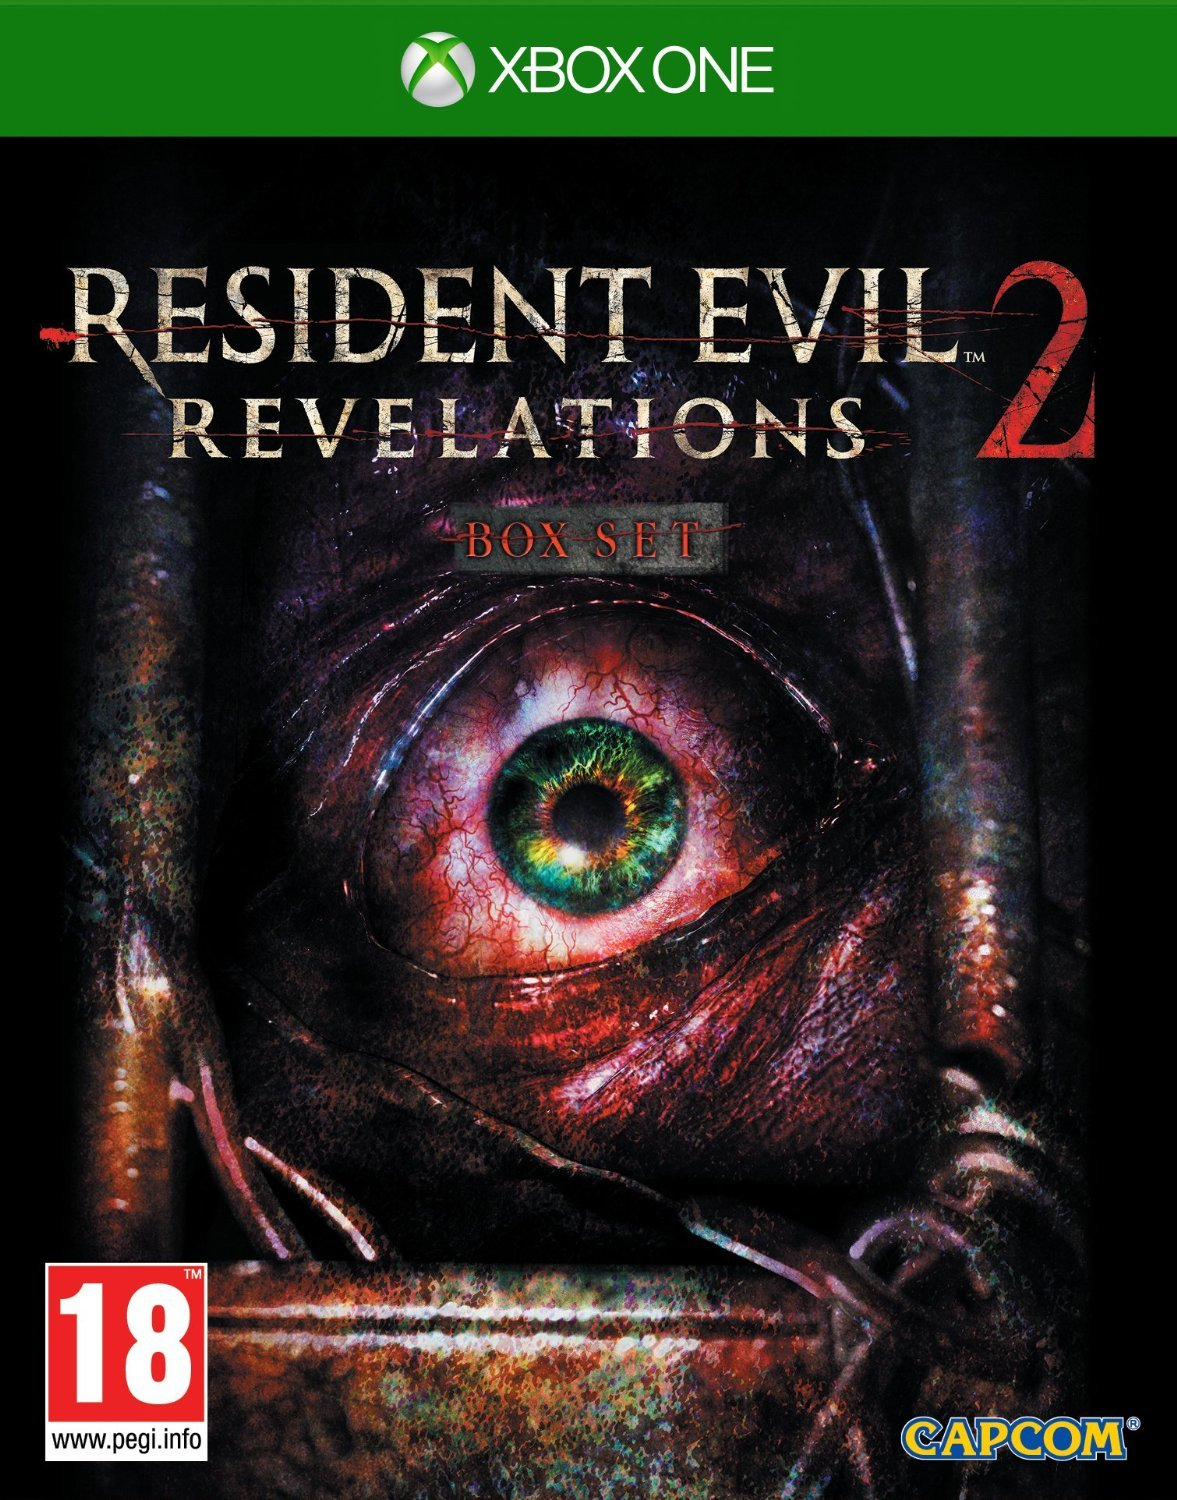 Resident Evil: Revelations 2 for Xbox One image